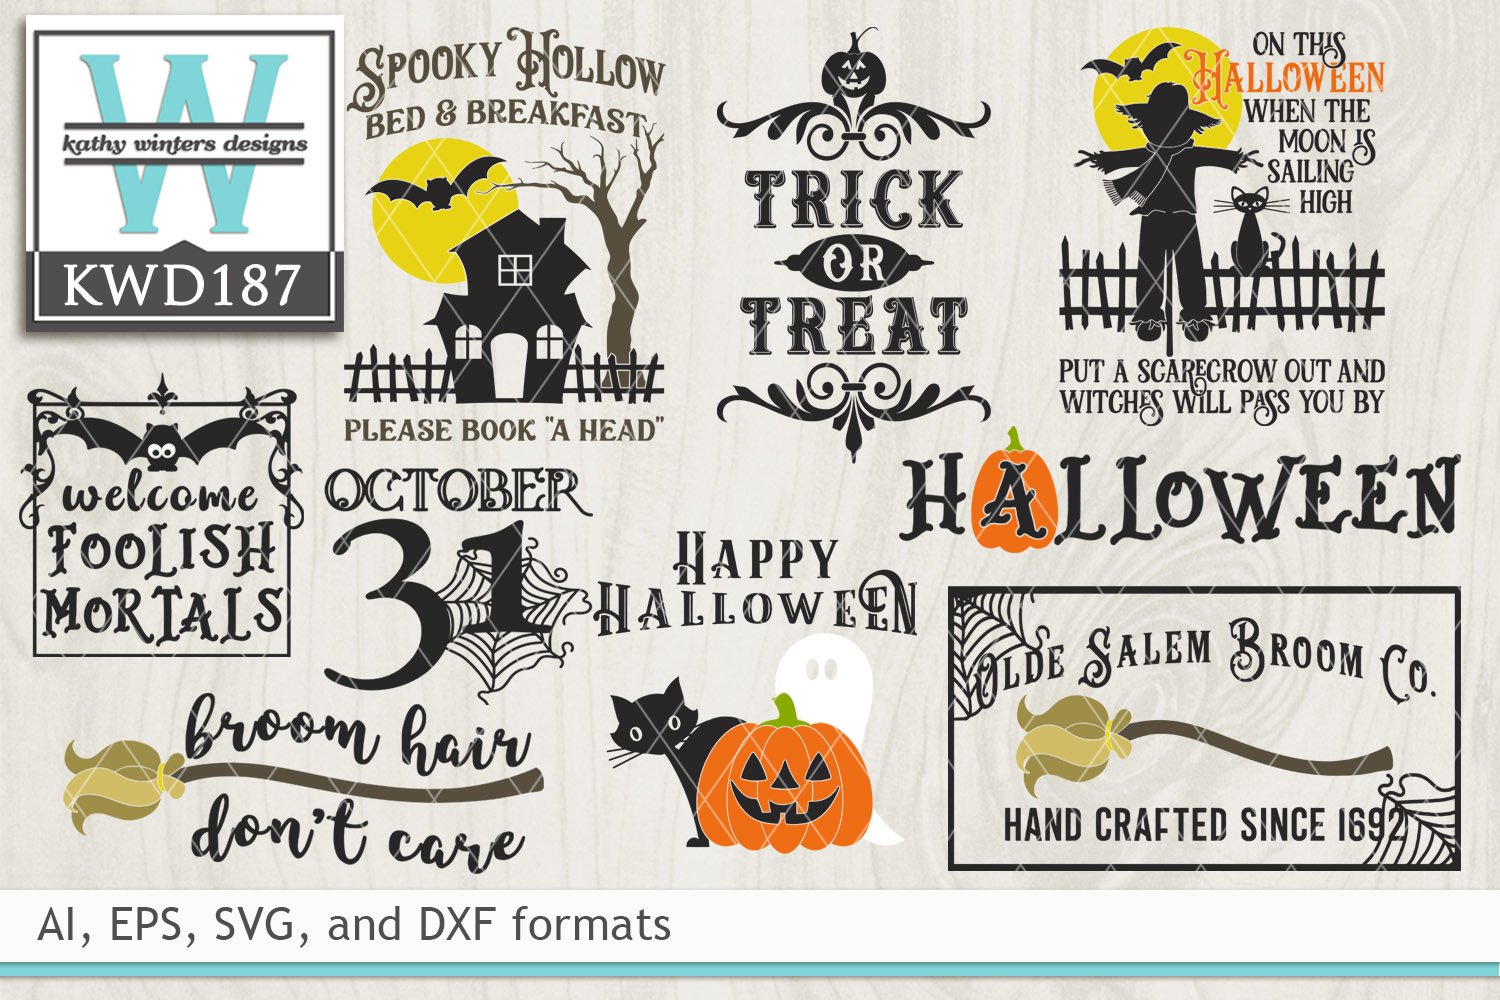 Bundled Halloween Cutting Files Kwd187 121640 Cut Files Design Bundles